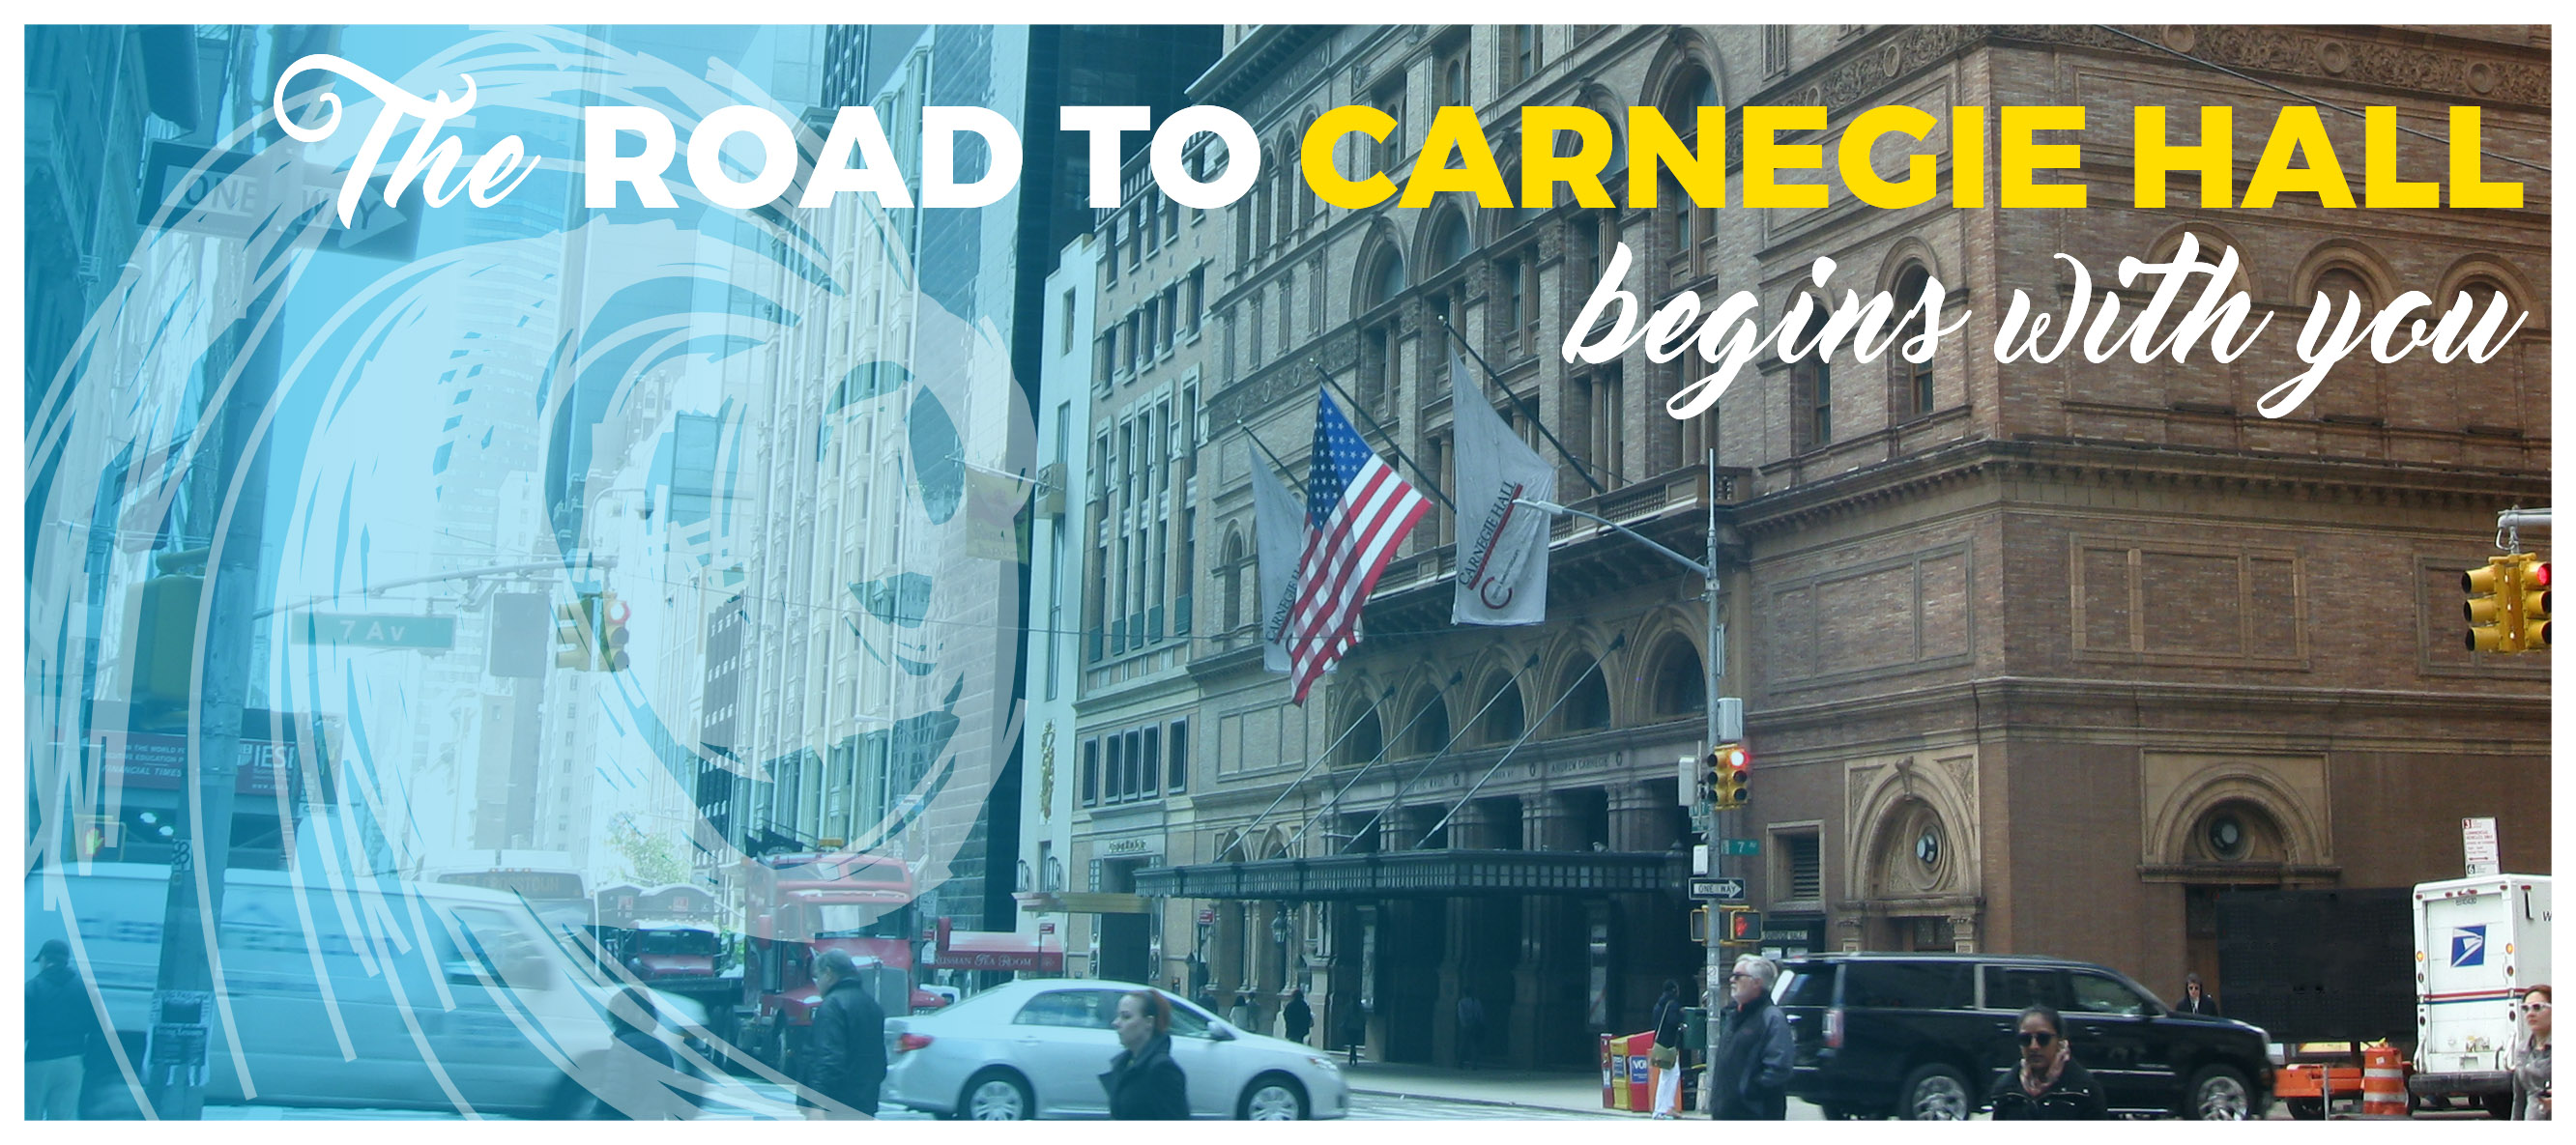 Road to Carnegie Hall v2 - FRONT